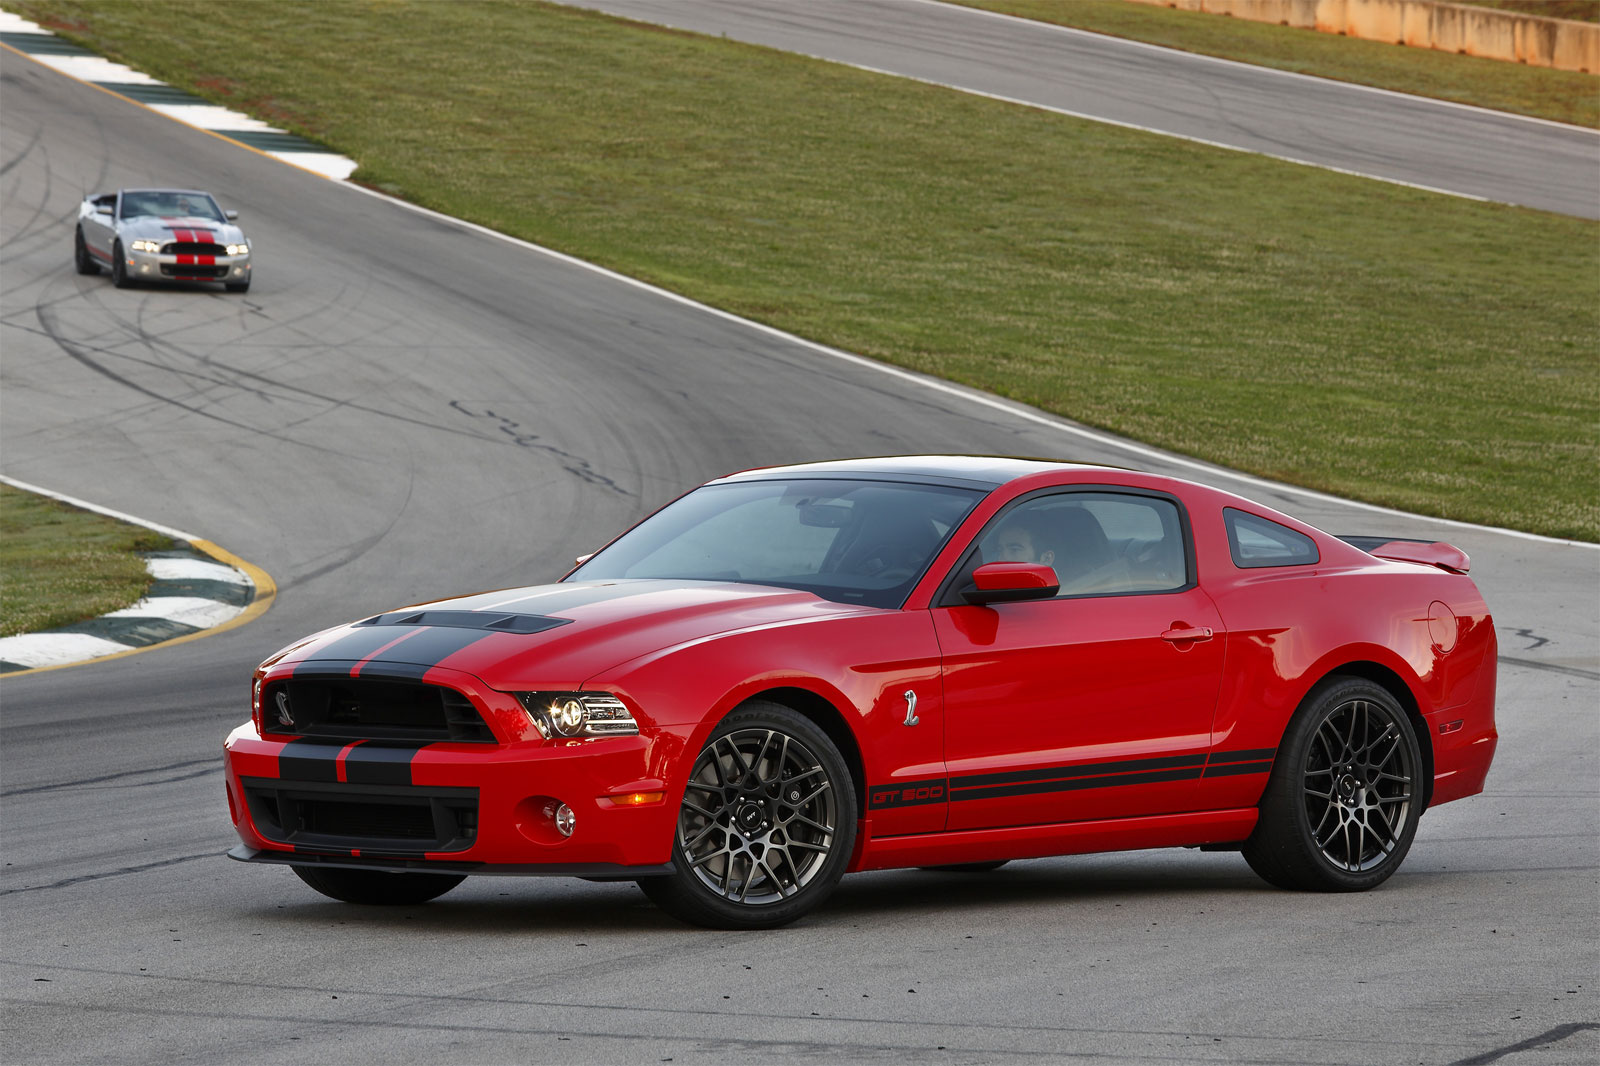 Sport Cars Ford Shelby GT500 Hd Wallpapers 2013 1600x1066